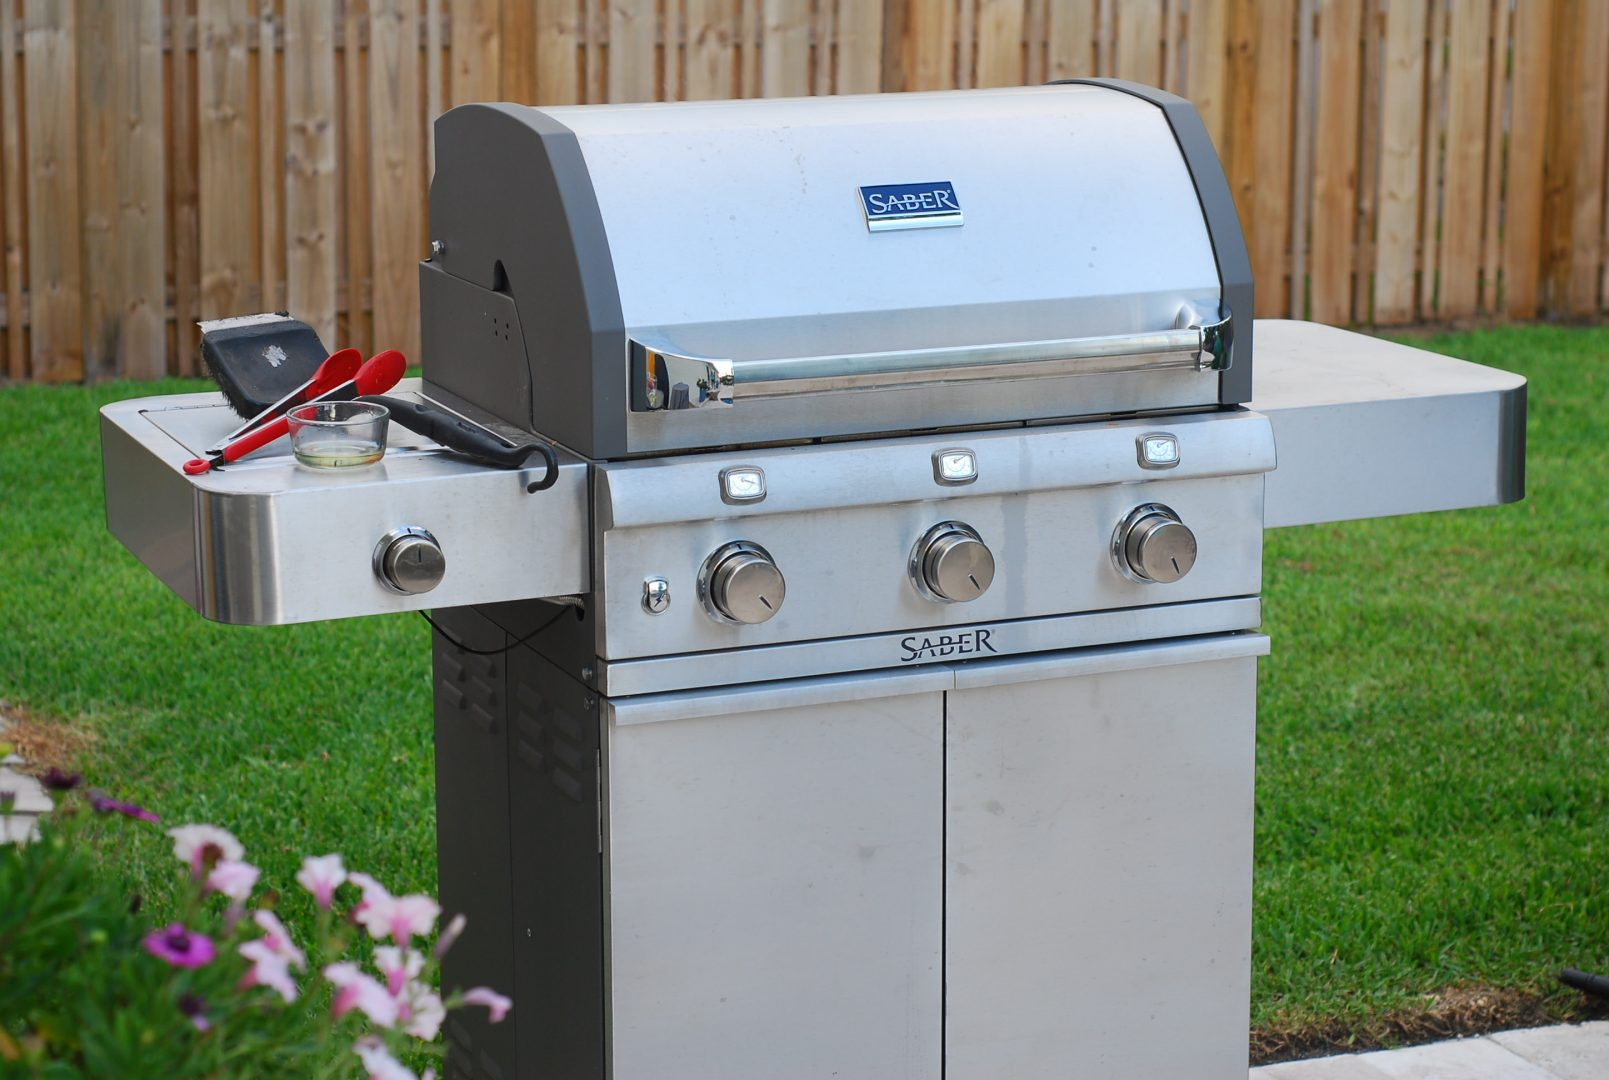 Saber Infrared Grill Review: The Saber Cast 500 - GrillGirl